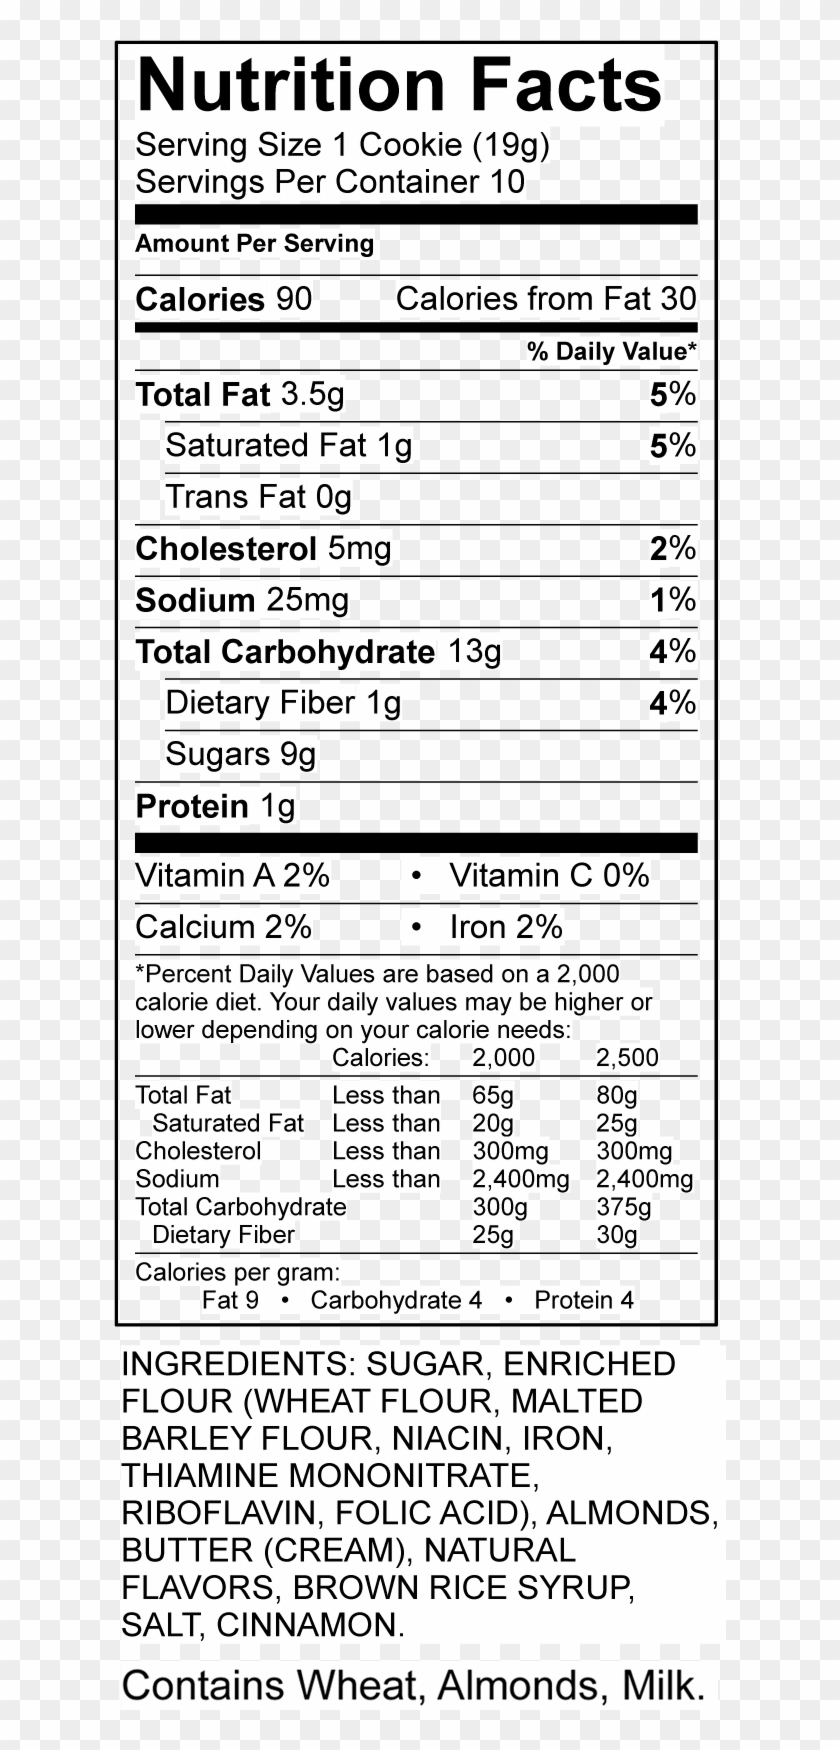 Rice Krispies Cereal Nutrition Facts, HD Png Download ...